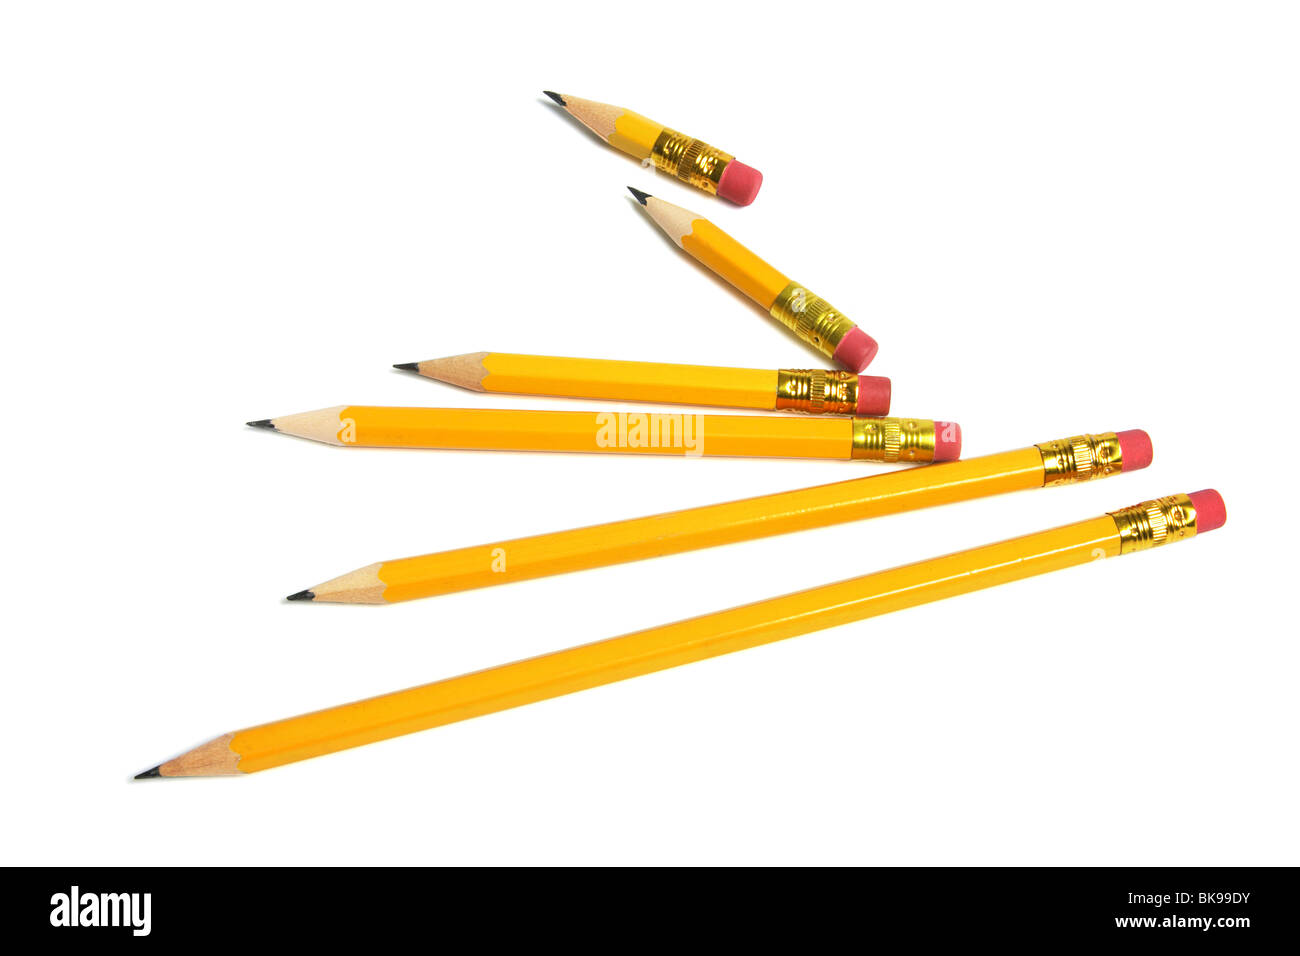 Long and Short Pencils - Stock Image